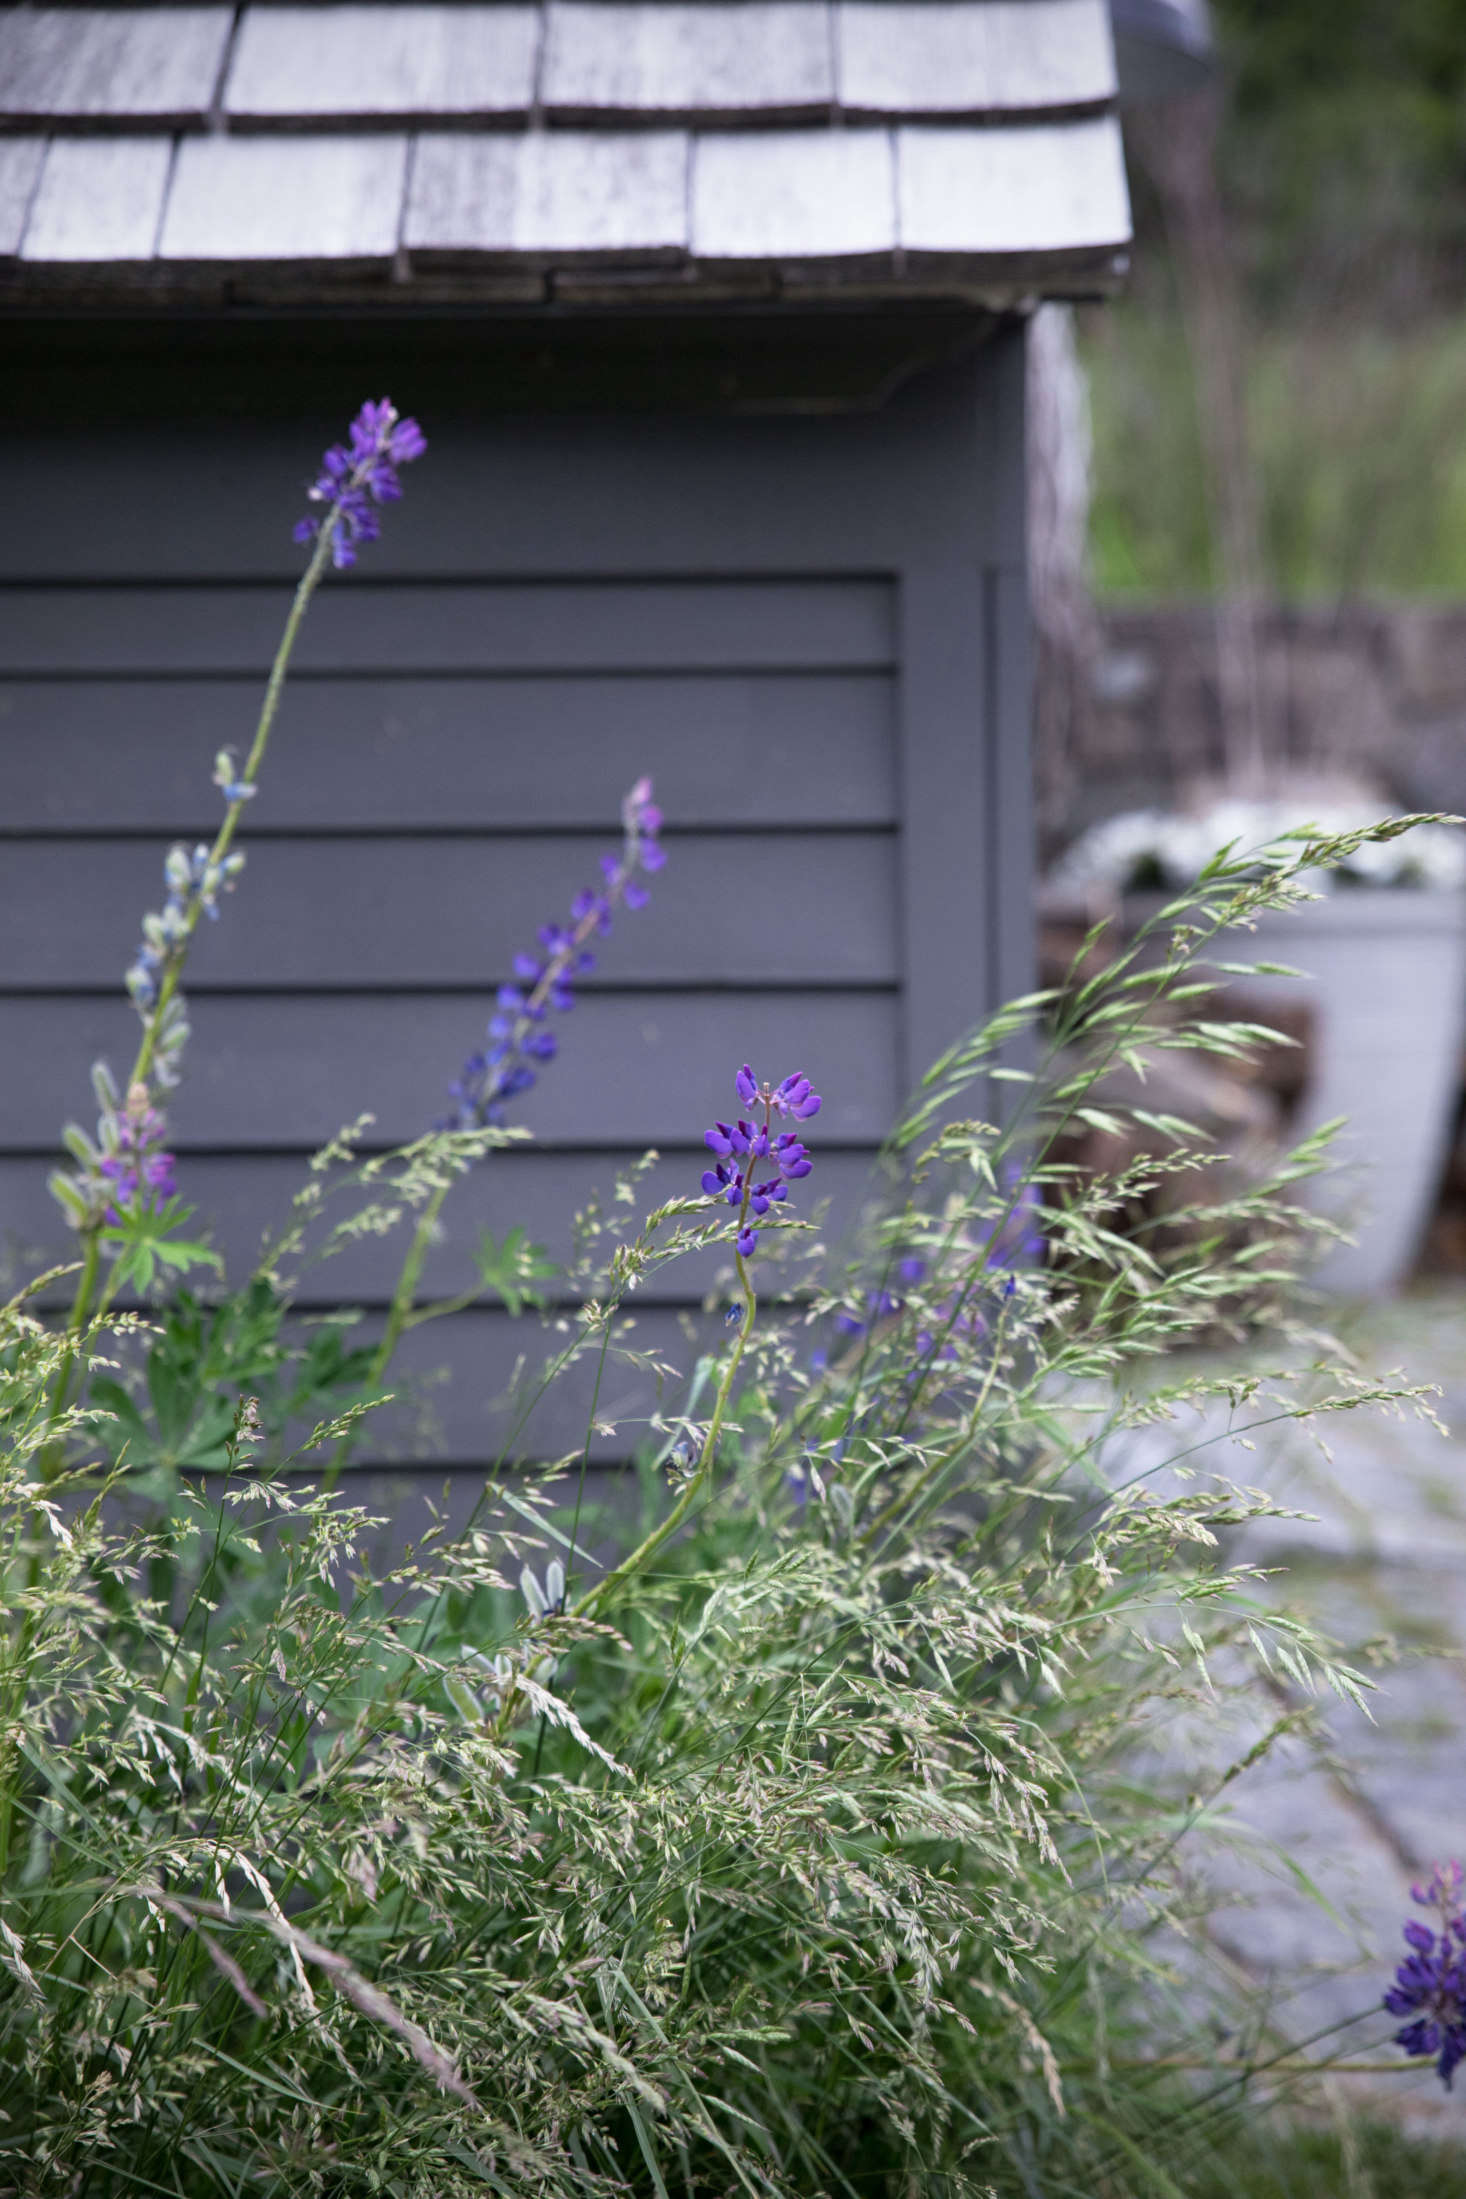 In the early summer, tall purple lupines emerge from the flowing grasses throughout the property.